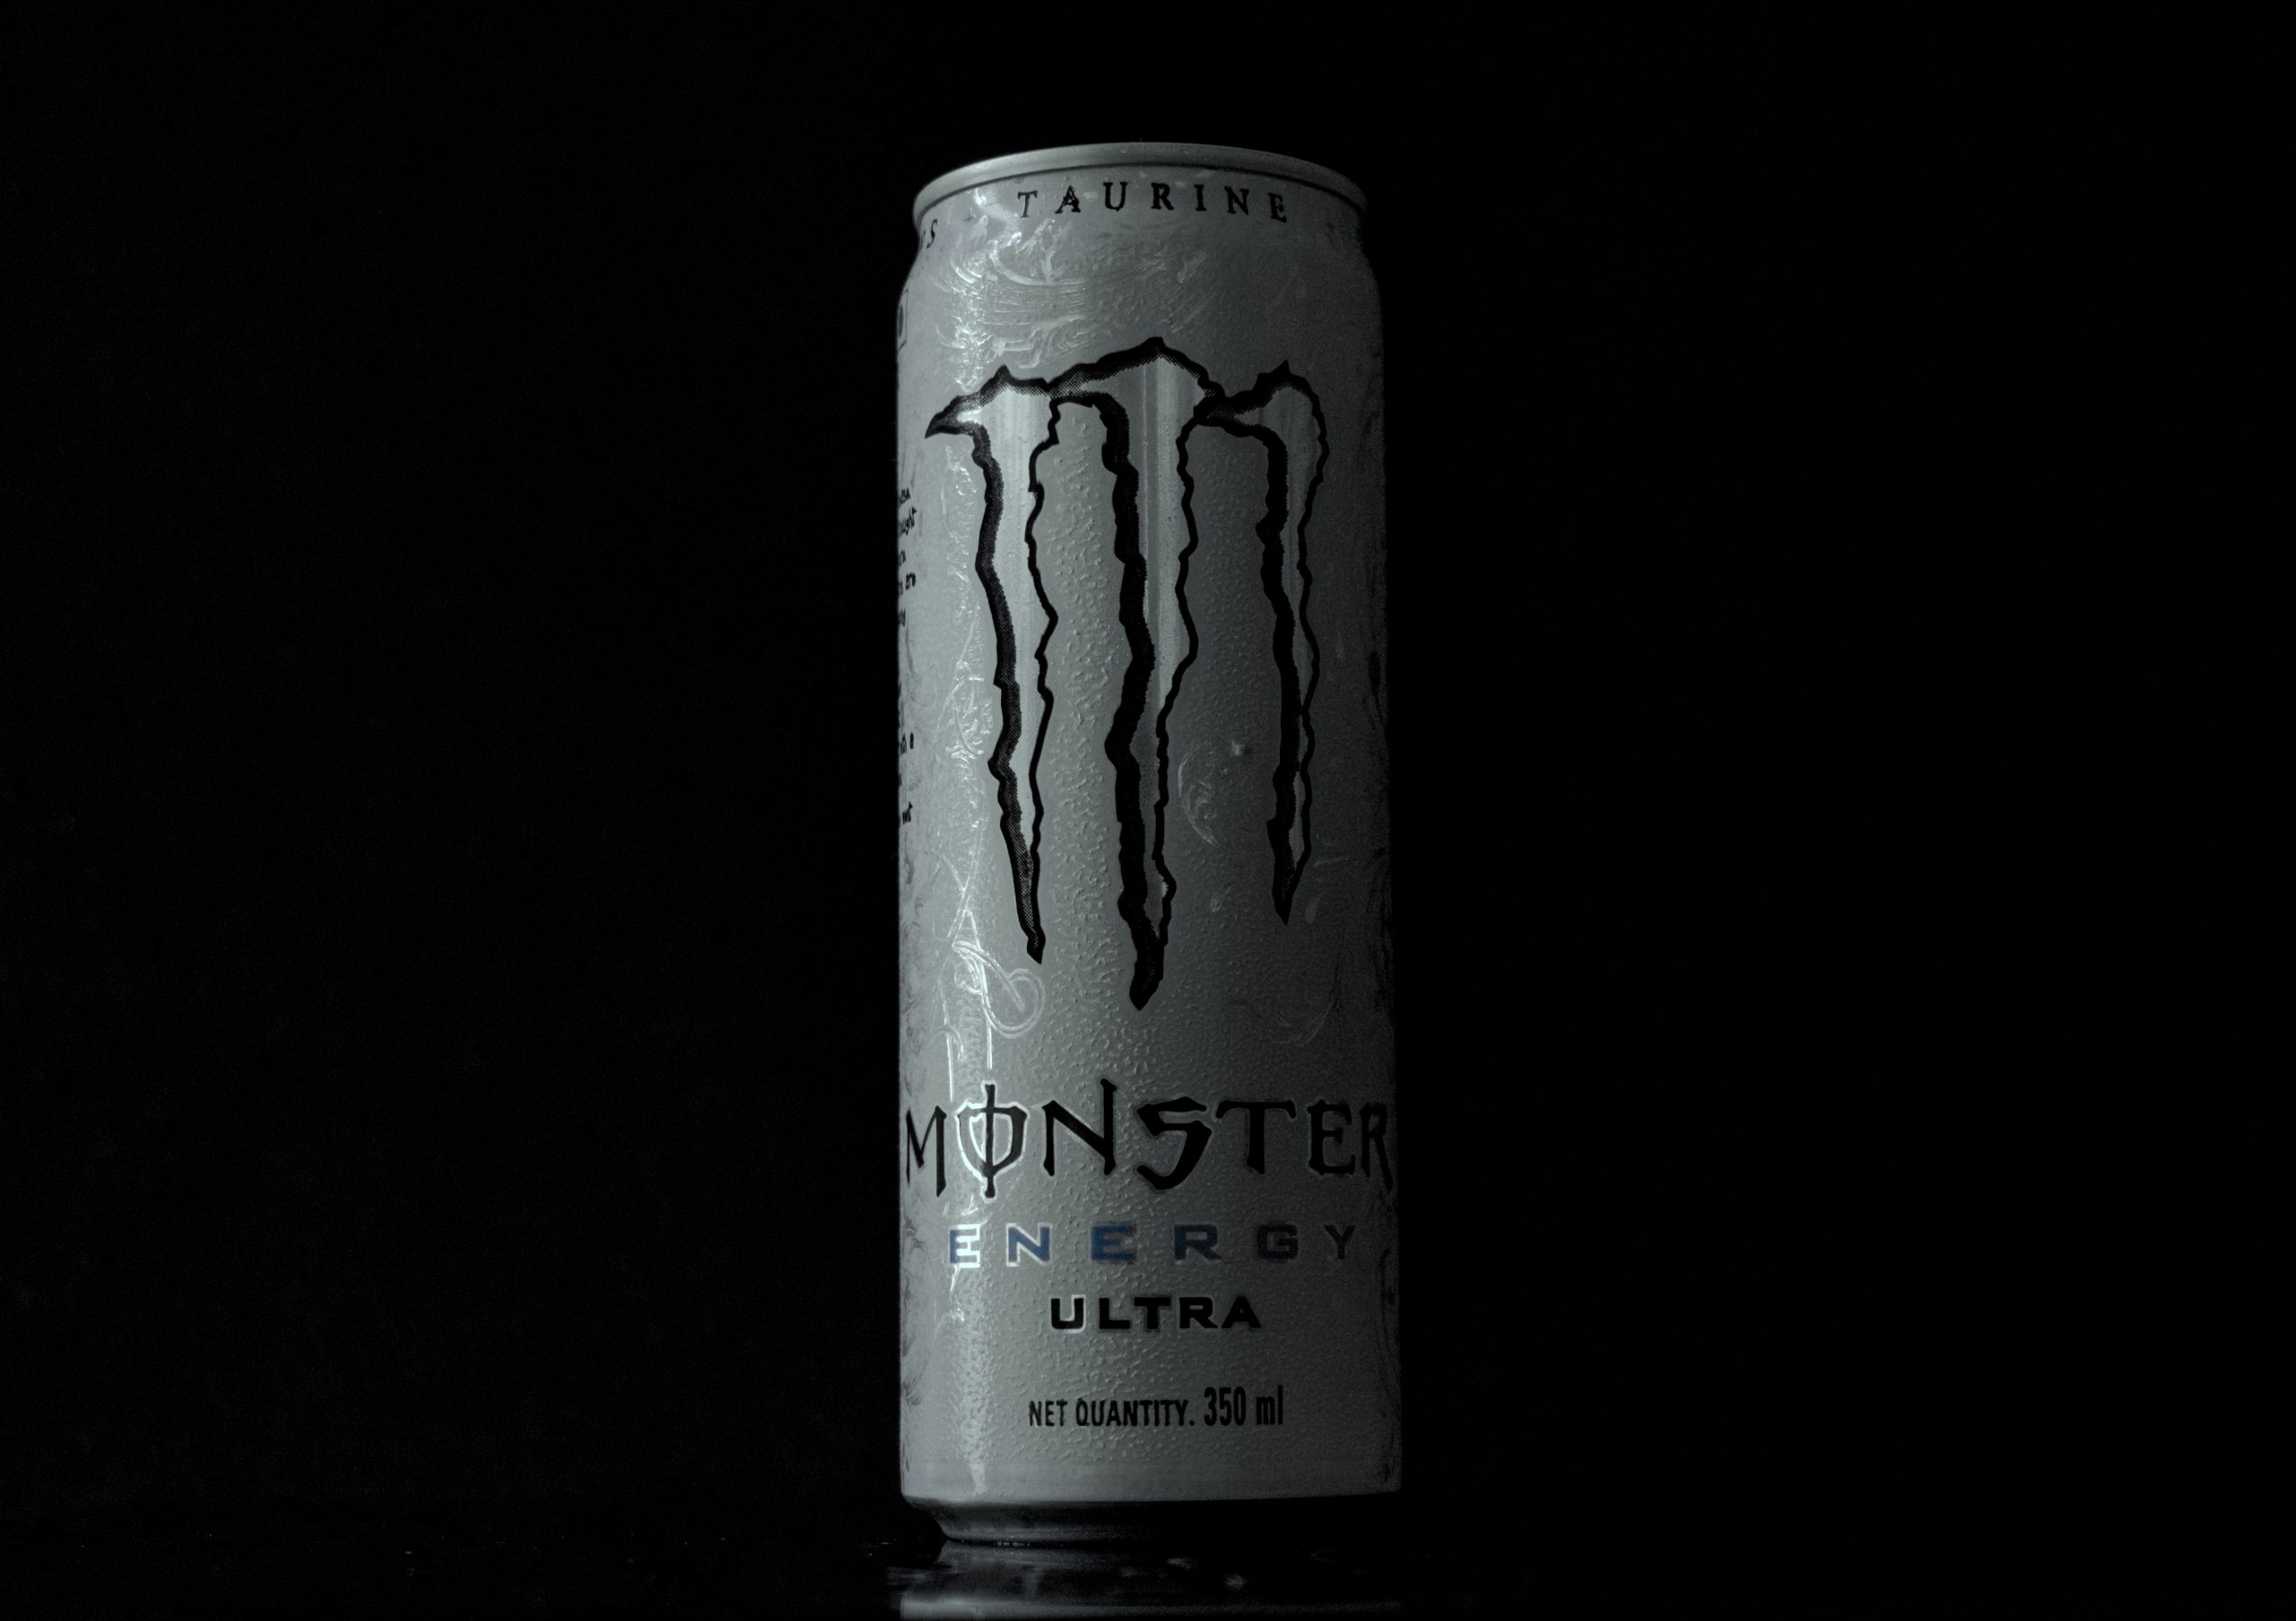 An energy drink can